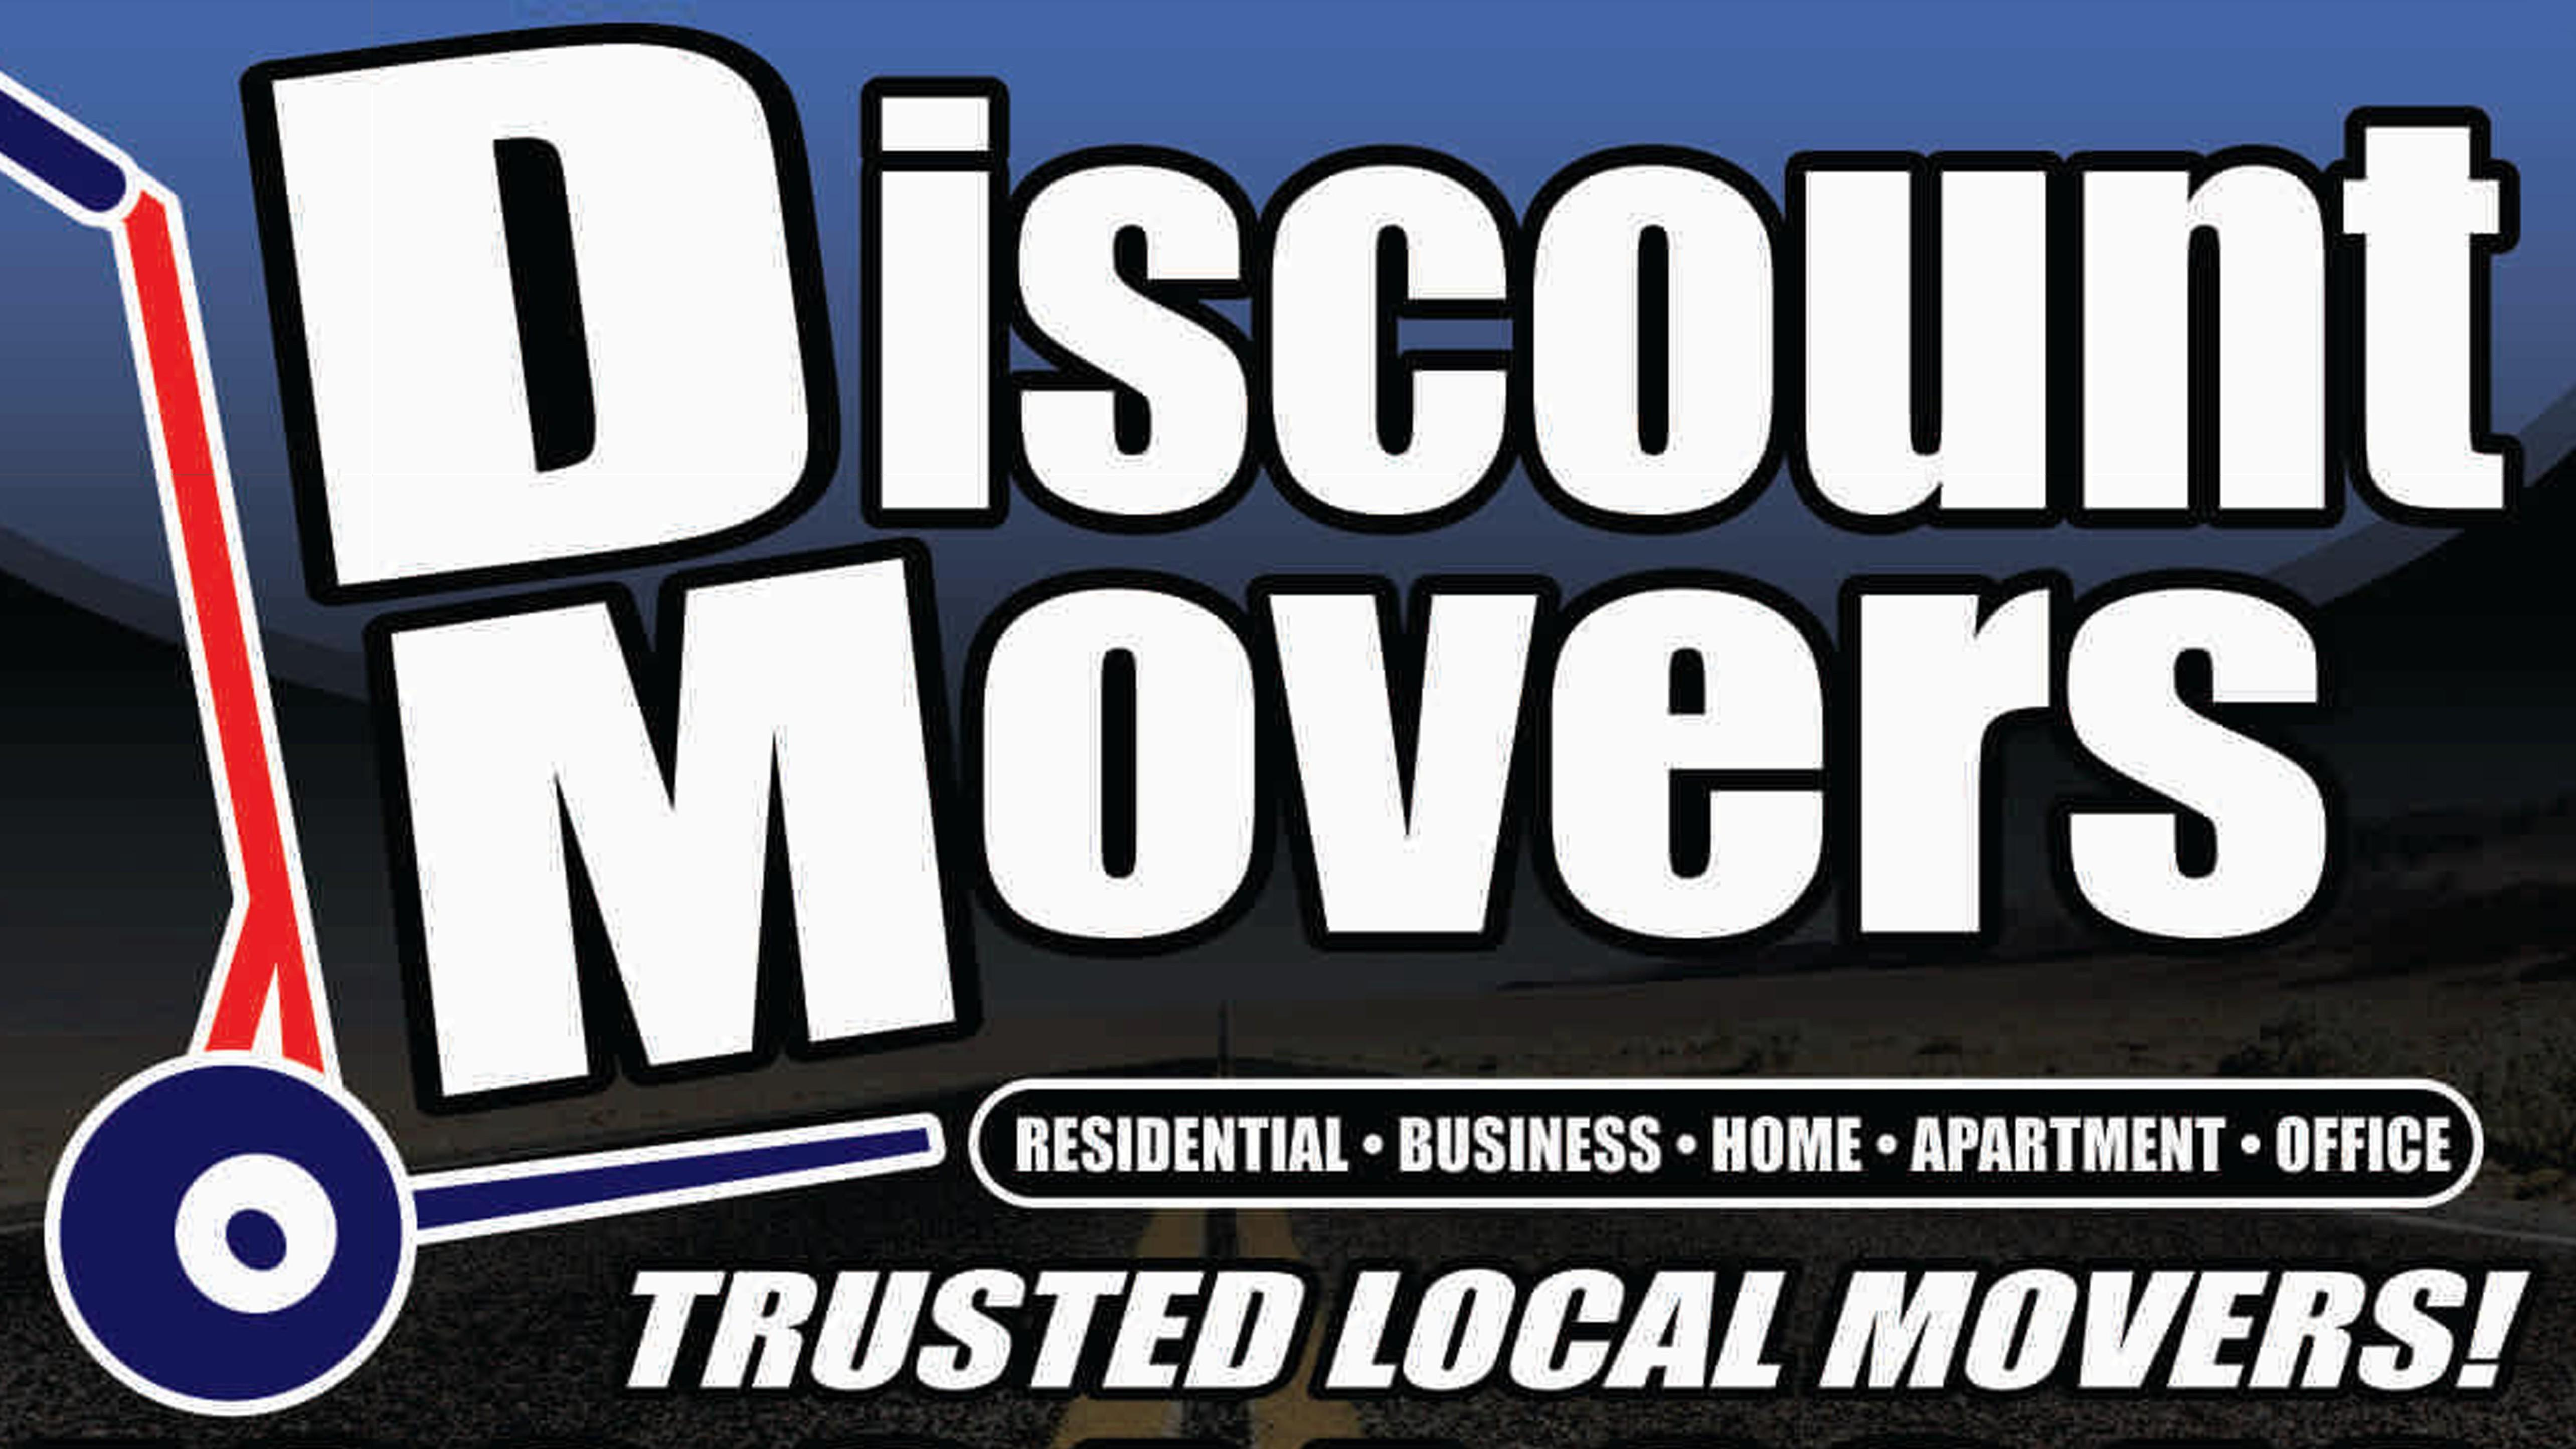 Discount movers in rowlett tx 75088 for Affordable furniture commerce tx